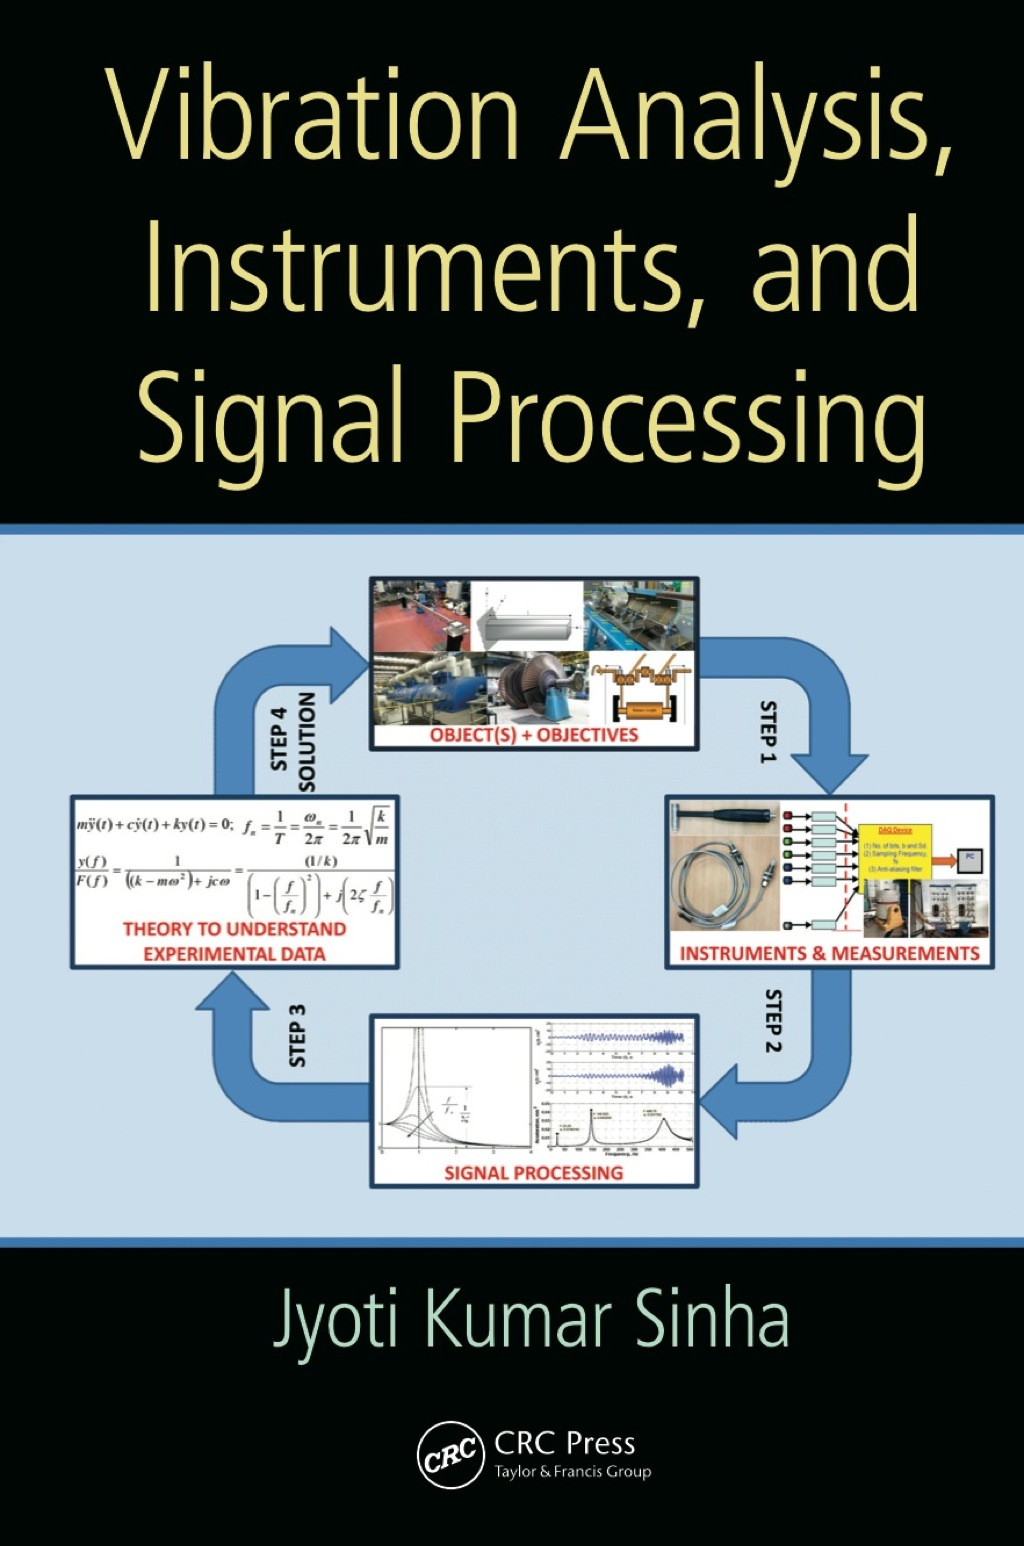 Vibration Analysis, Instruments, and Signal Processing (ebook) eBooks